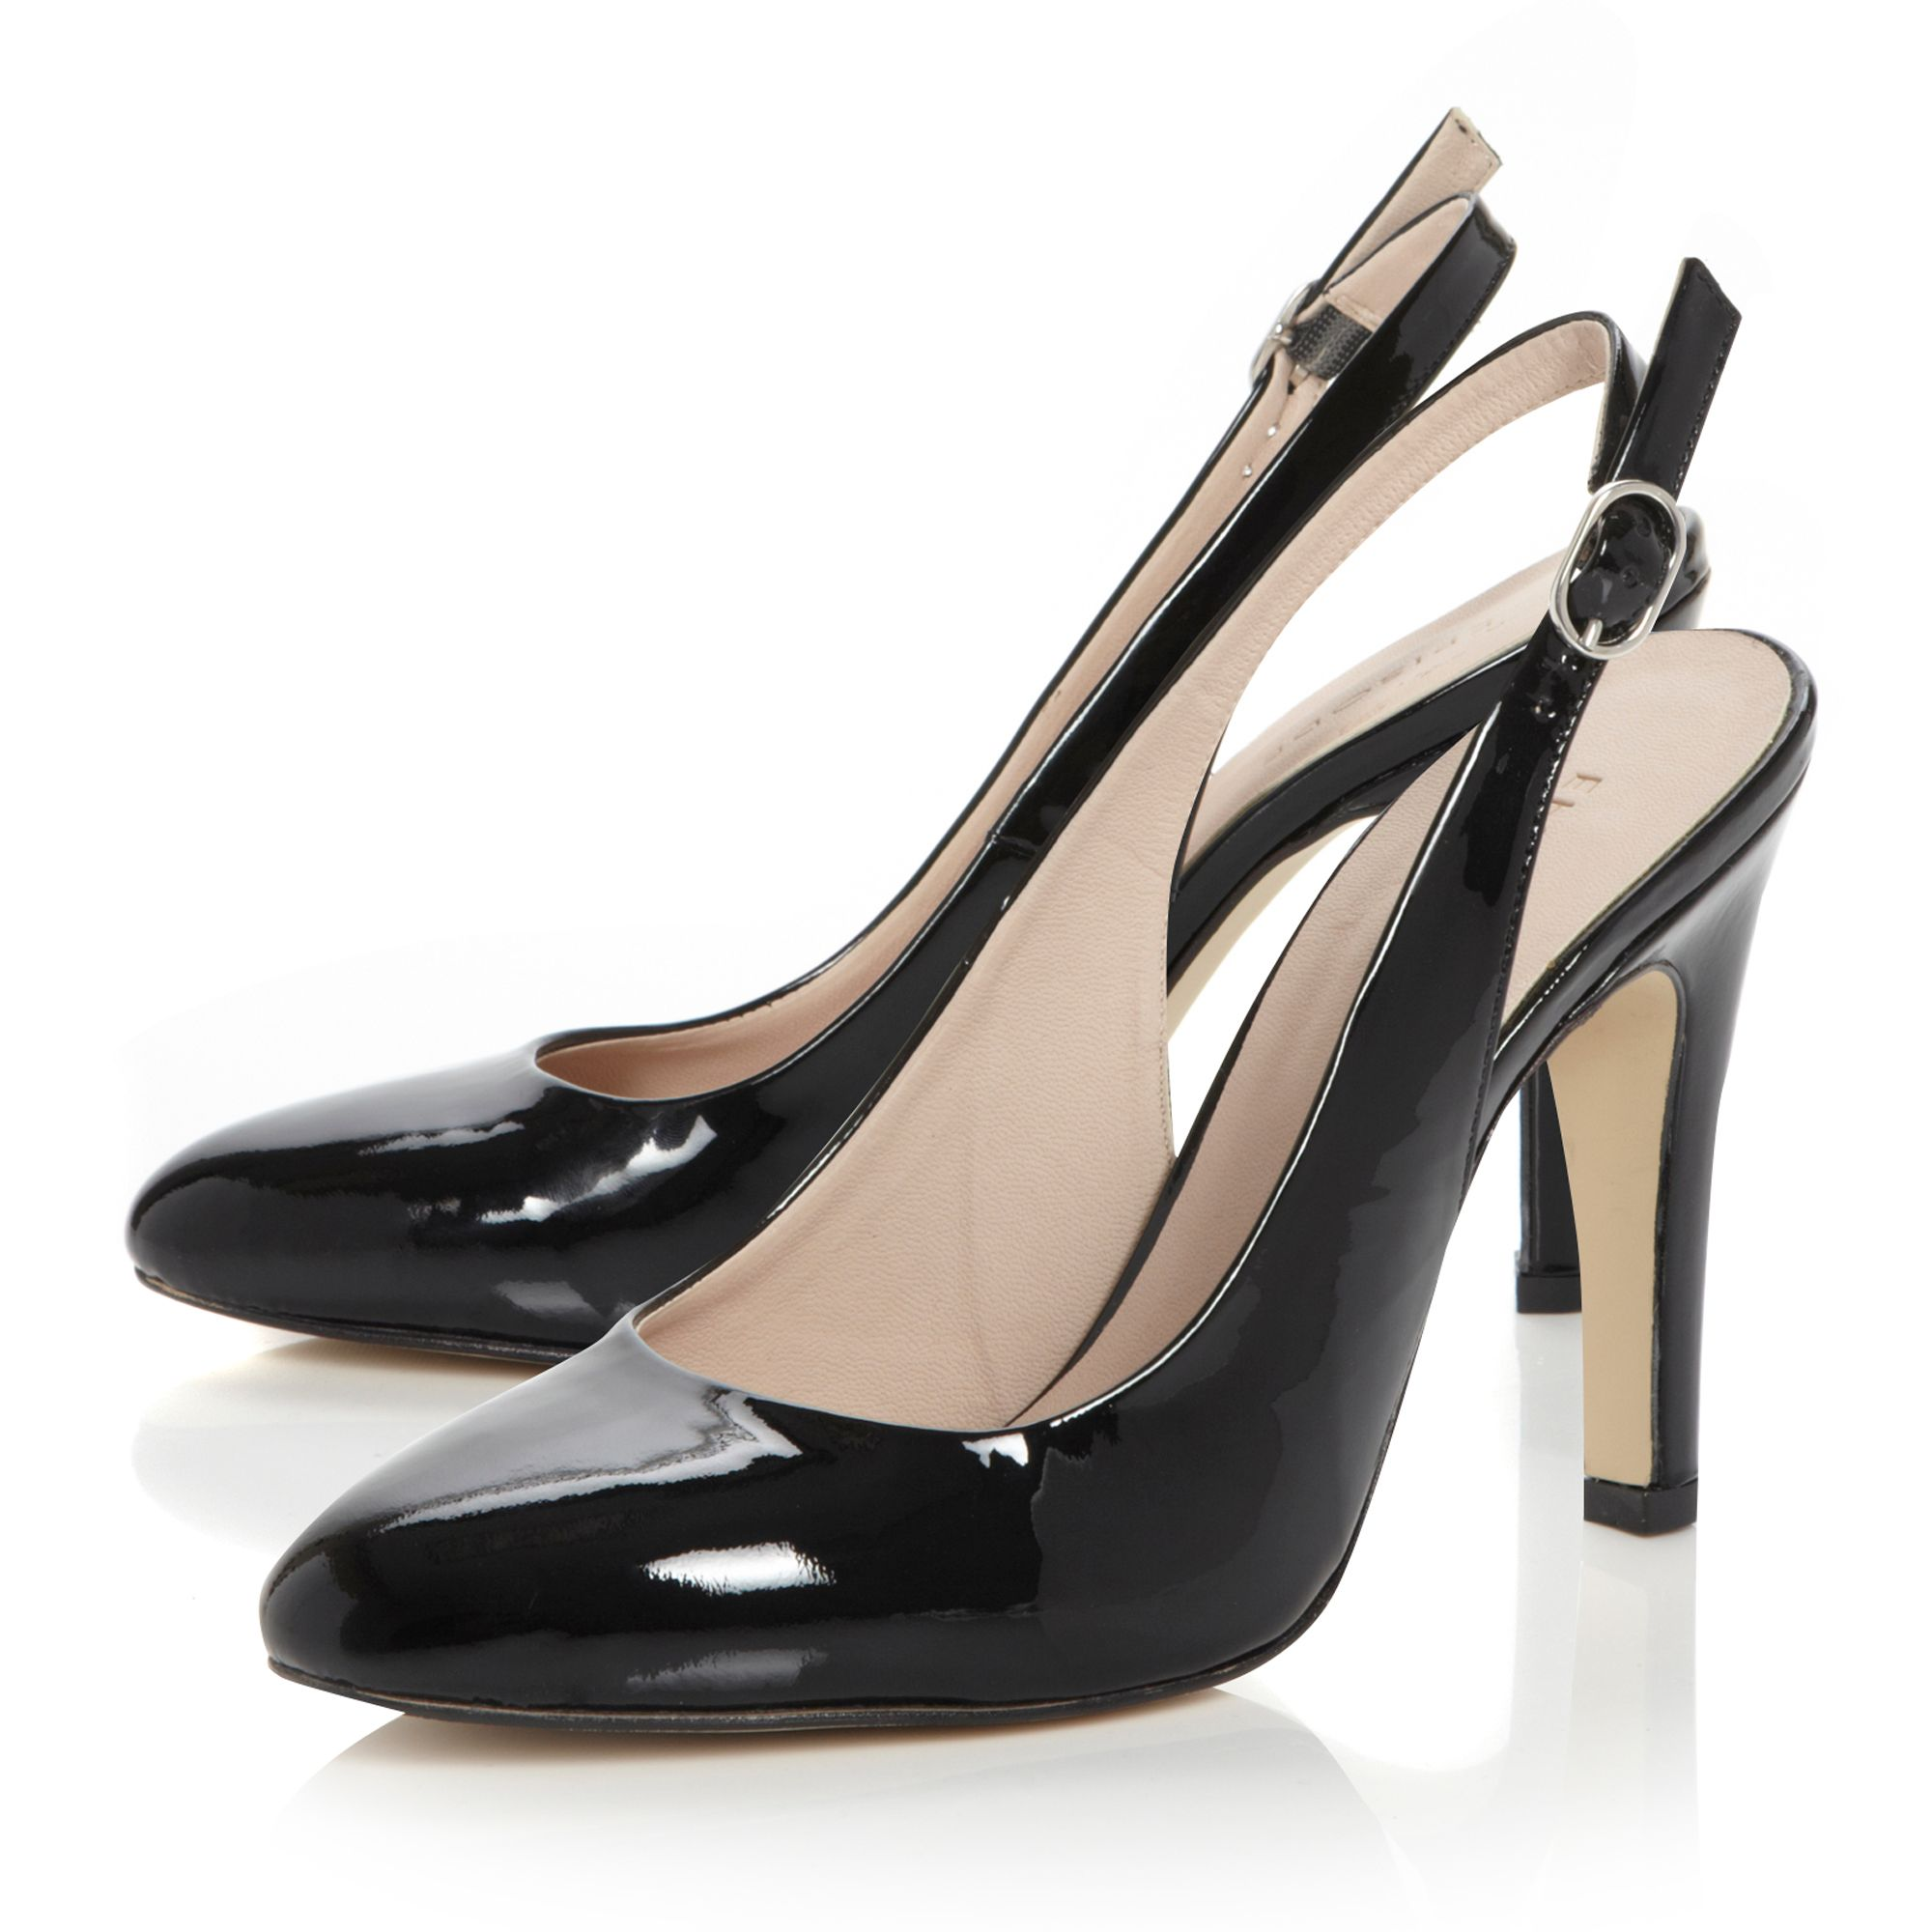 Calamity plain sling back shoes